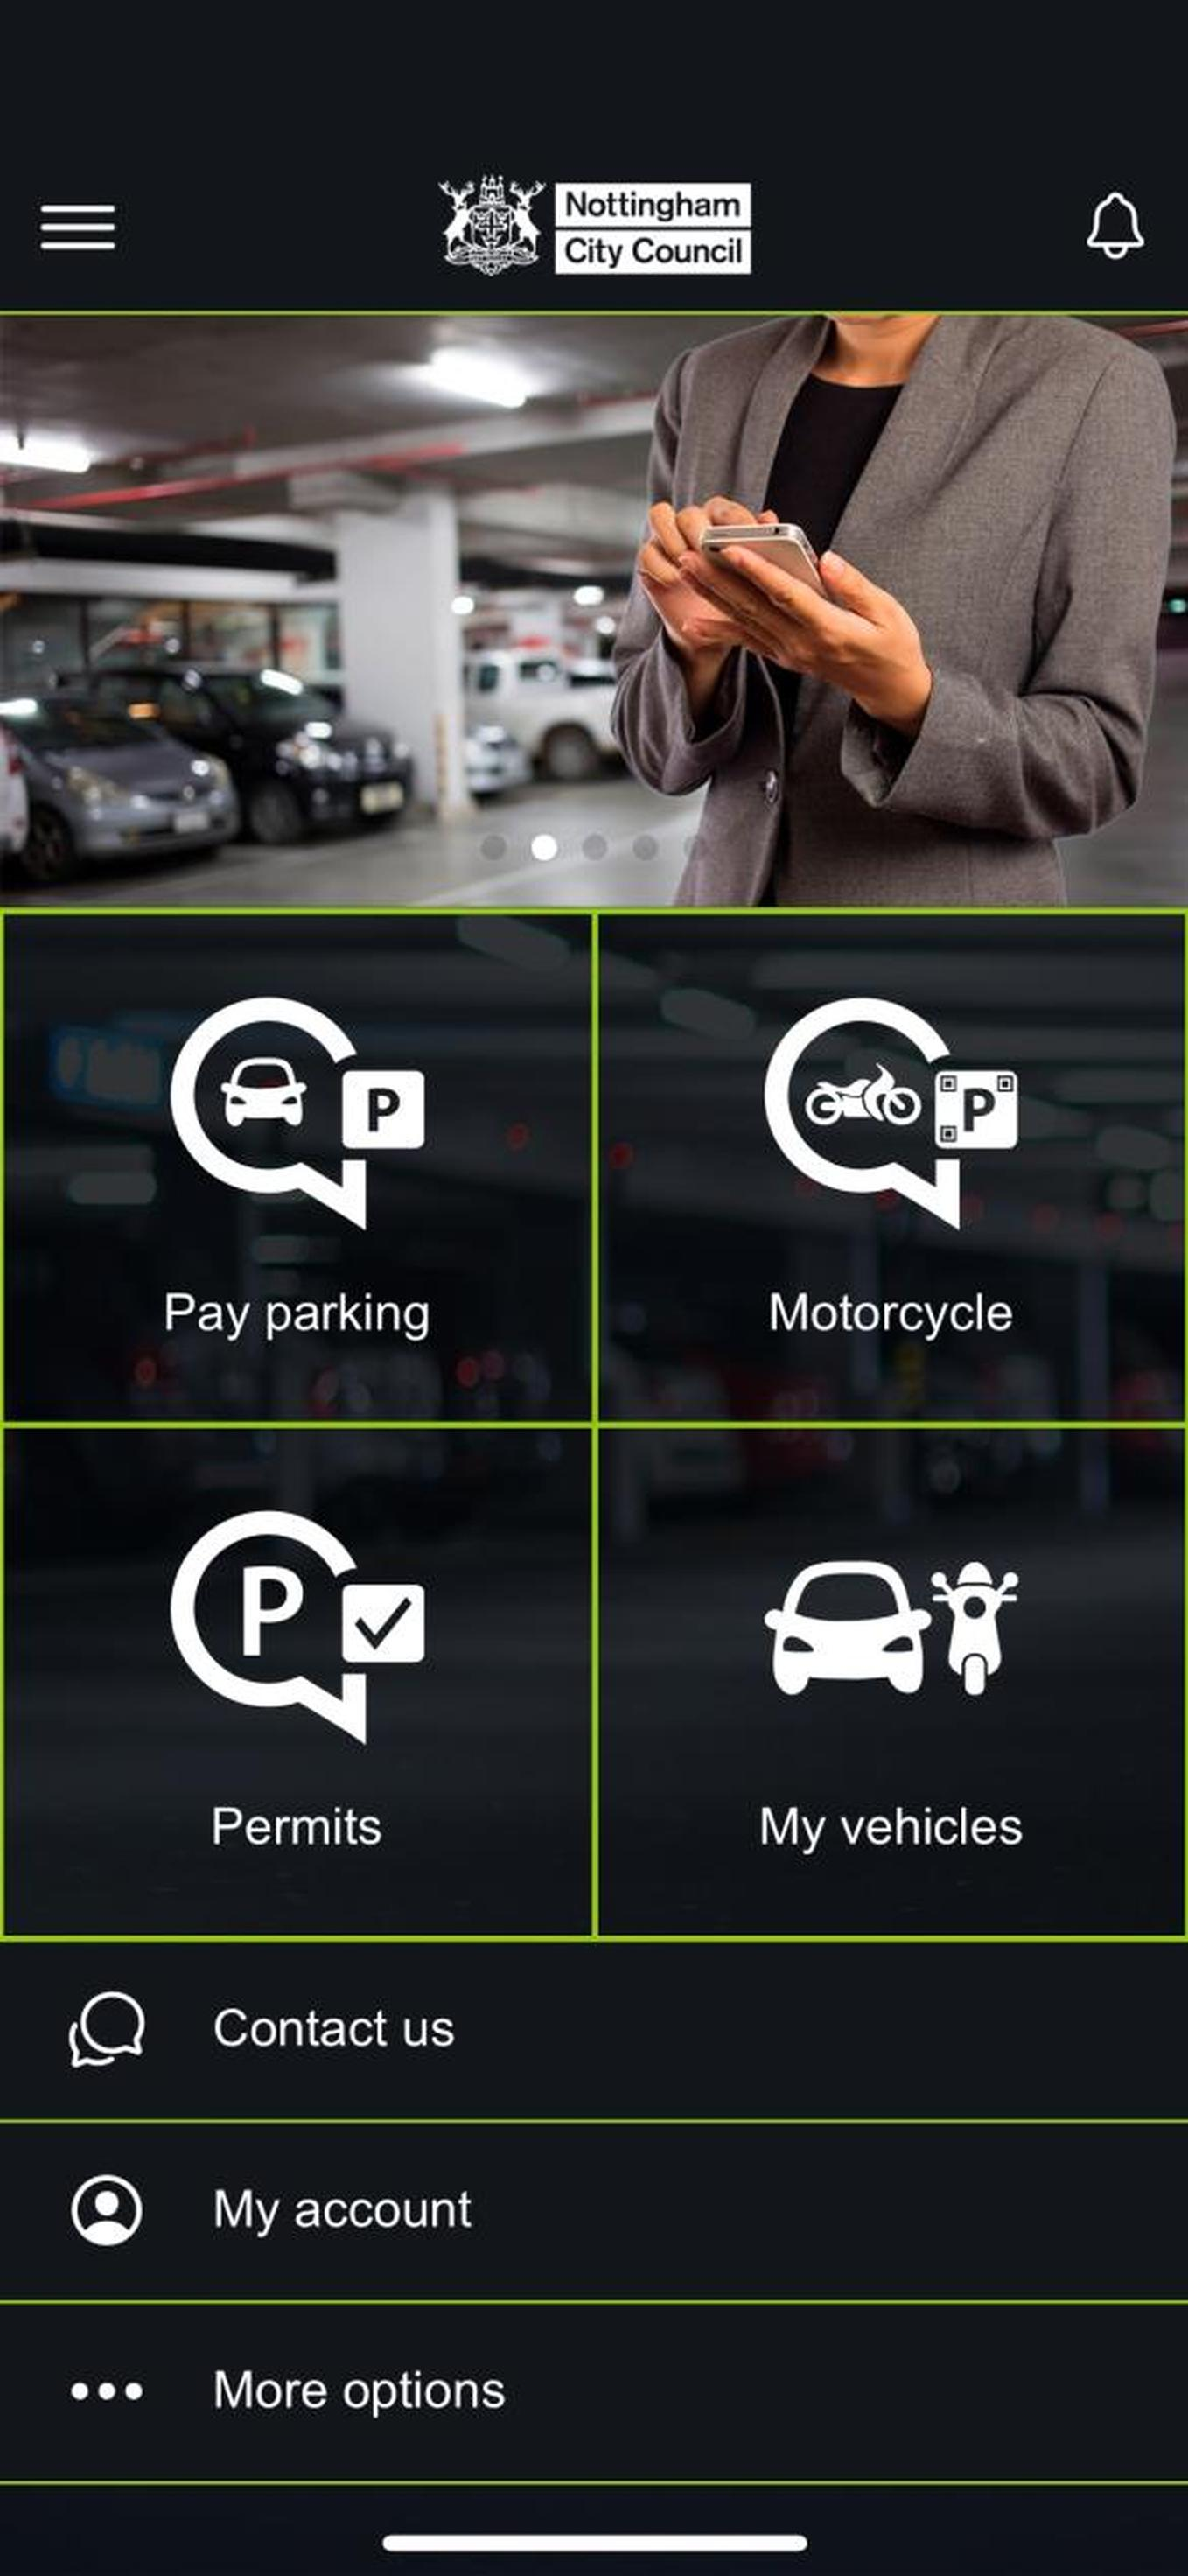 The RHParking app